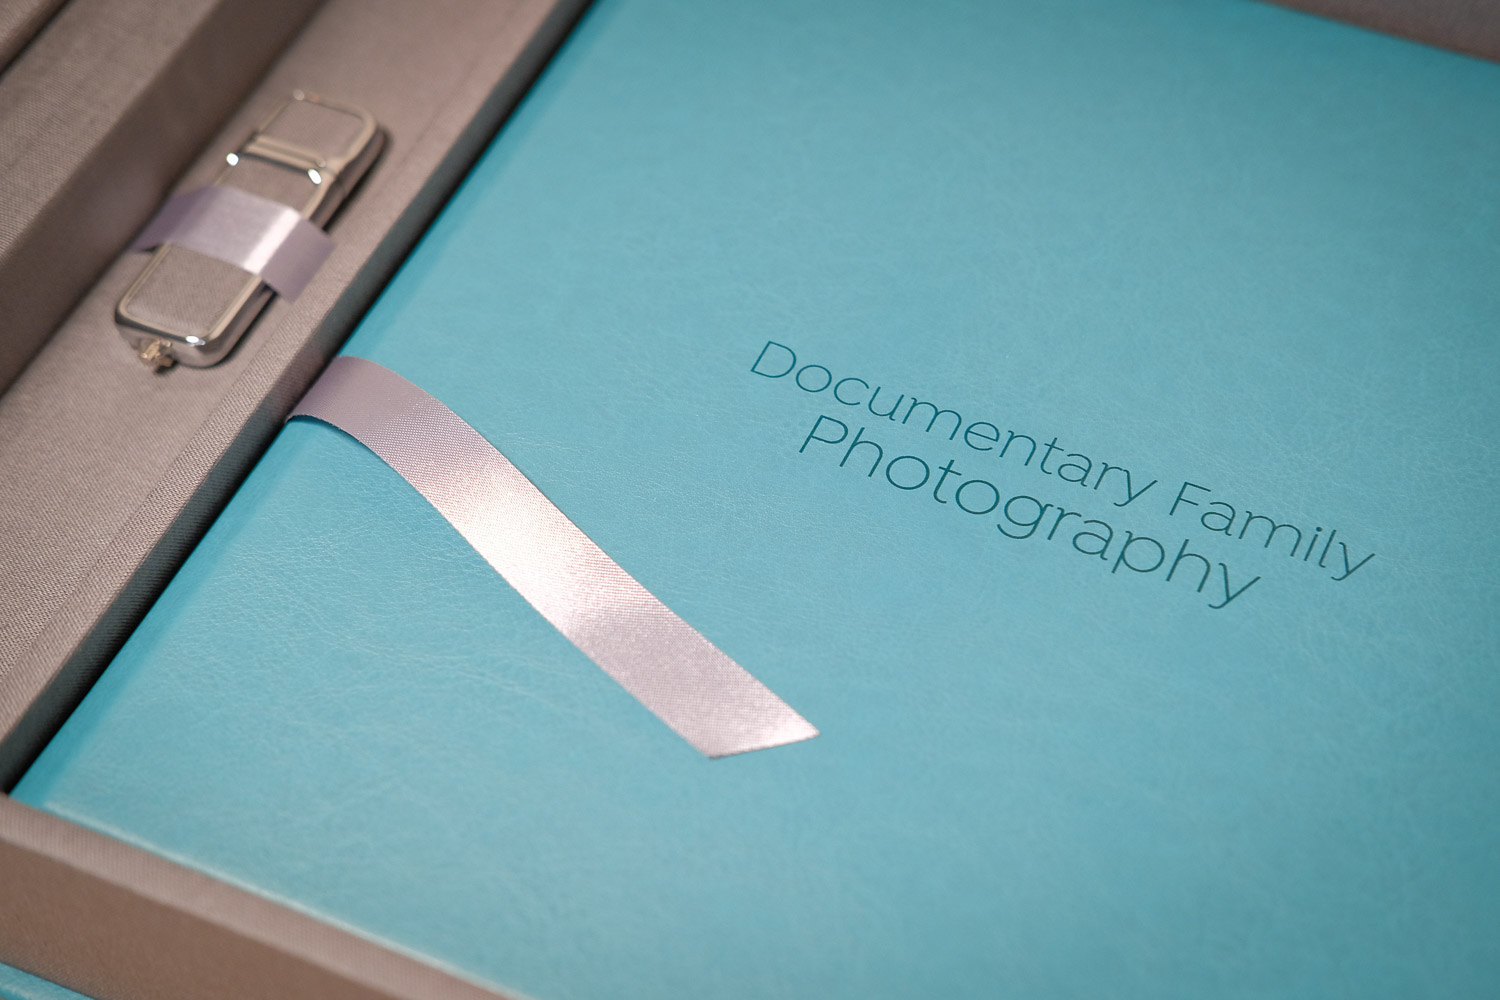 Example of a documentary family photo album from Daryl Porter Photography